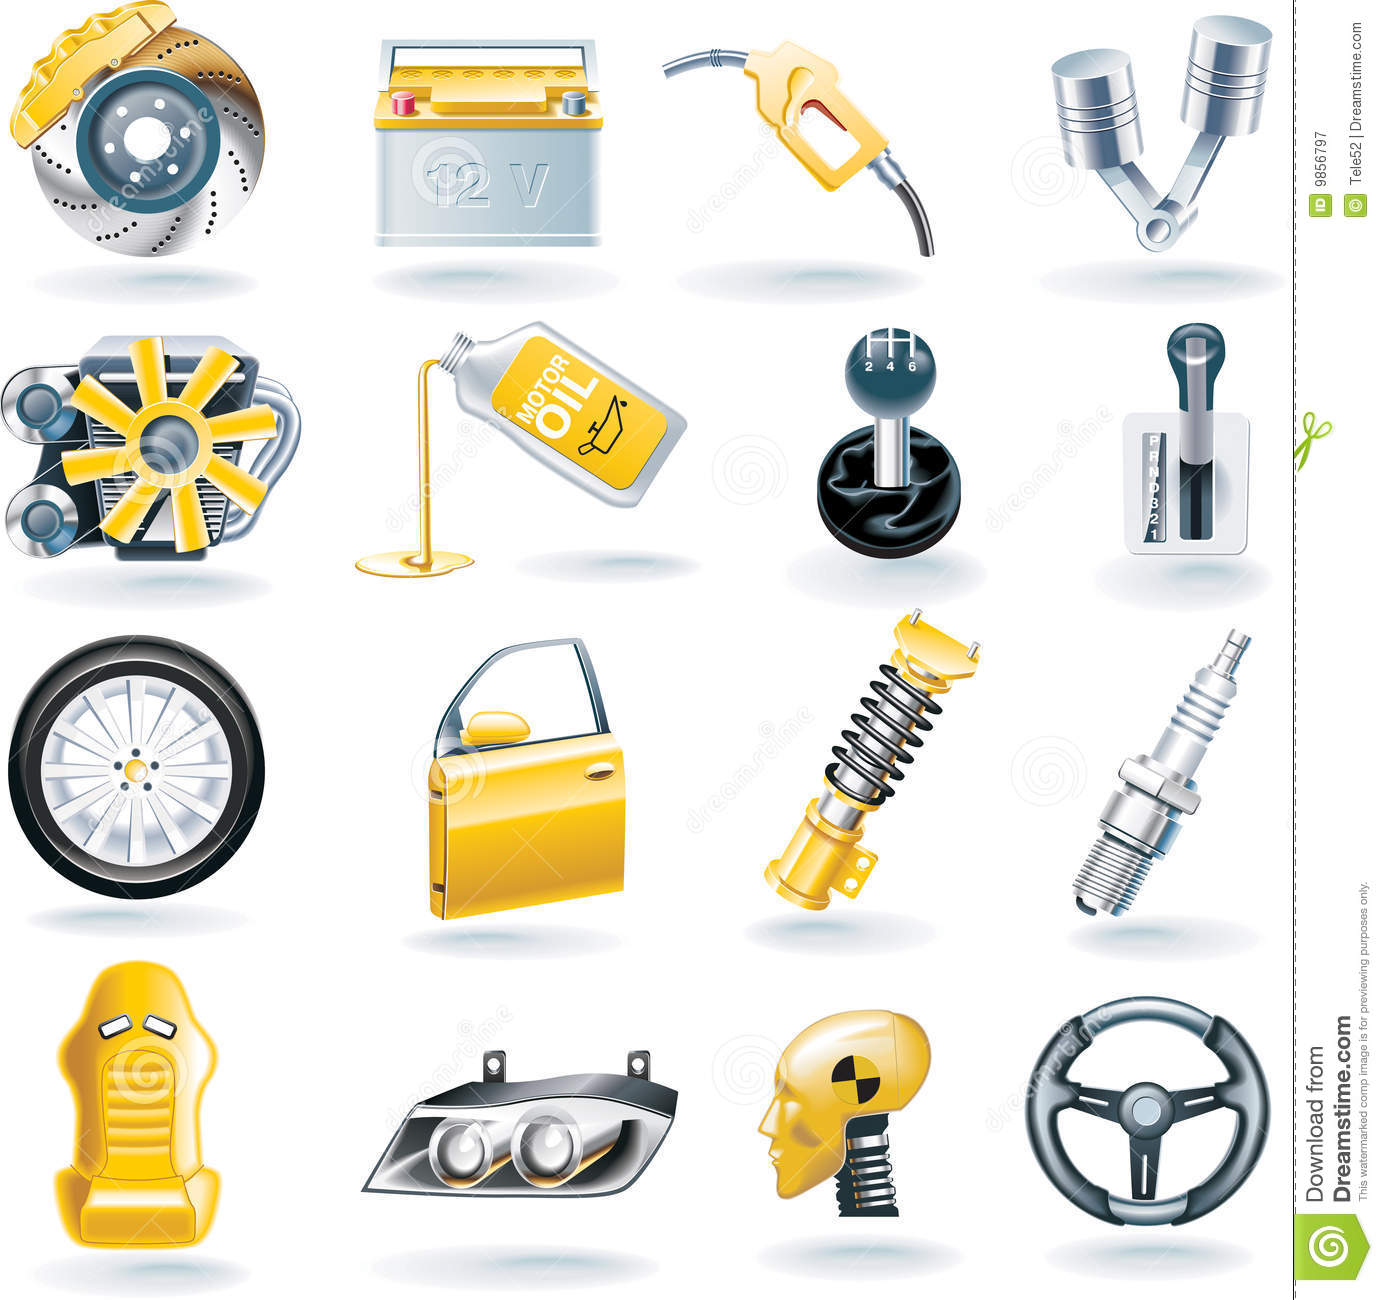 14 Icon Automotive Parts Images